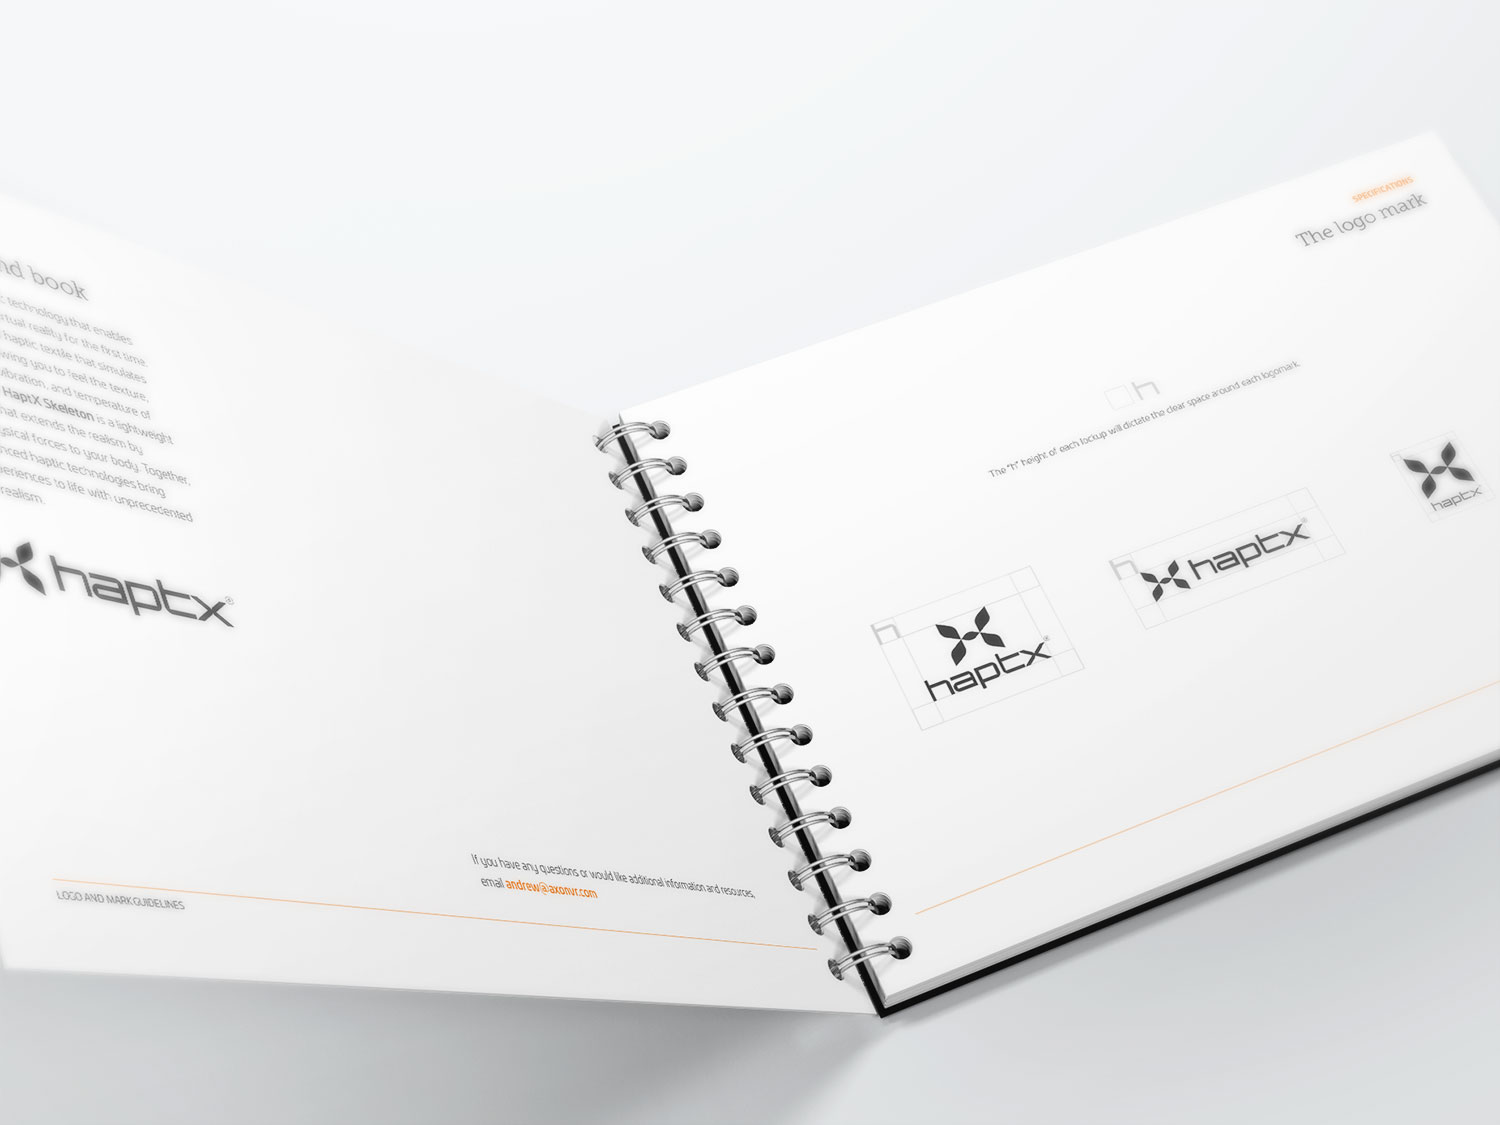 A HaptX book that has been opened to a page with the HaptX logo on it. The book is laying on a white table.